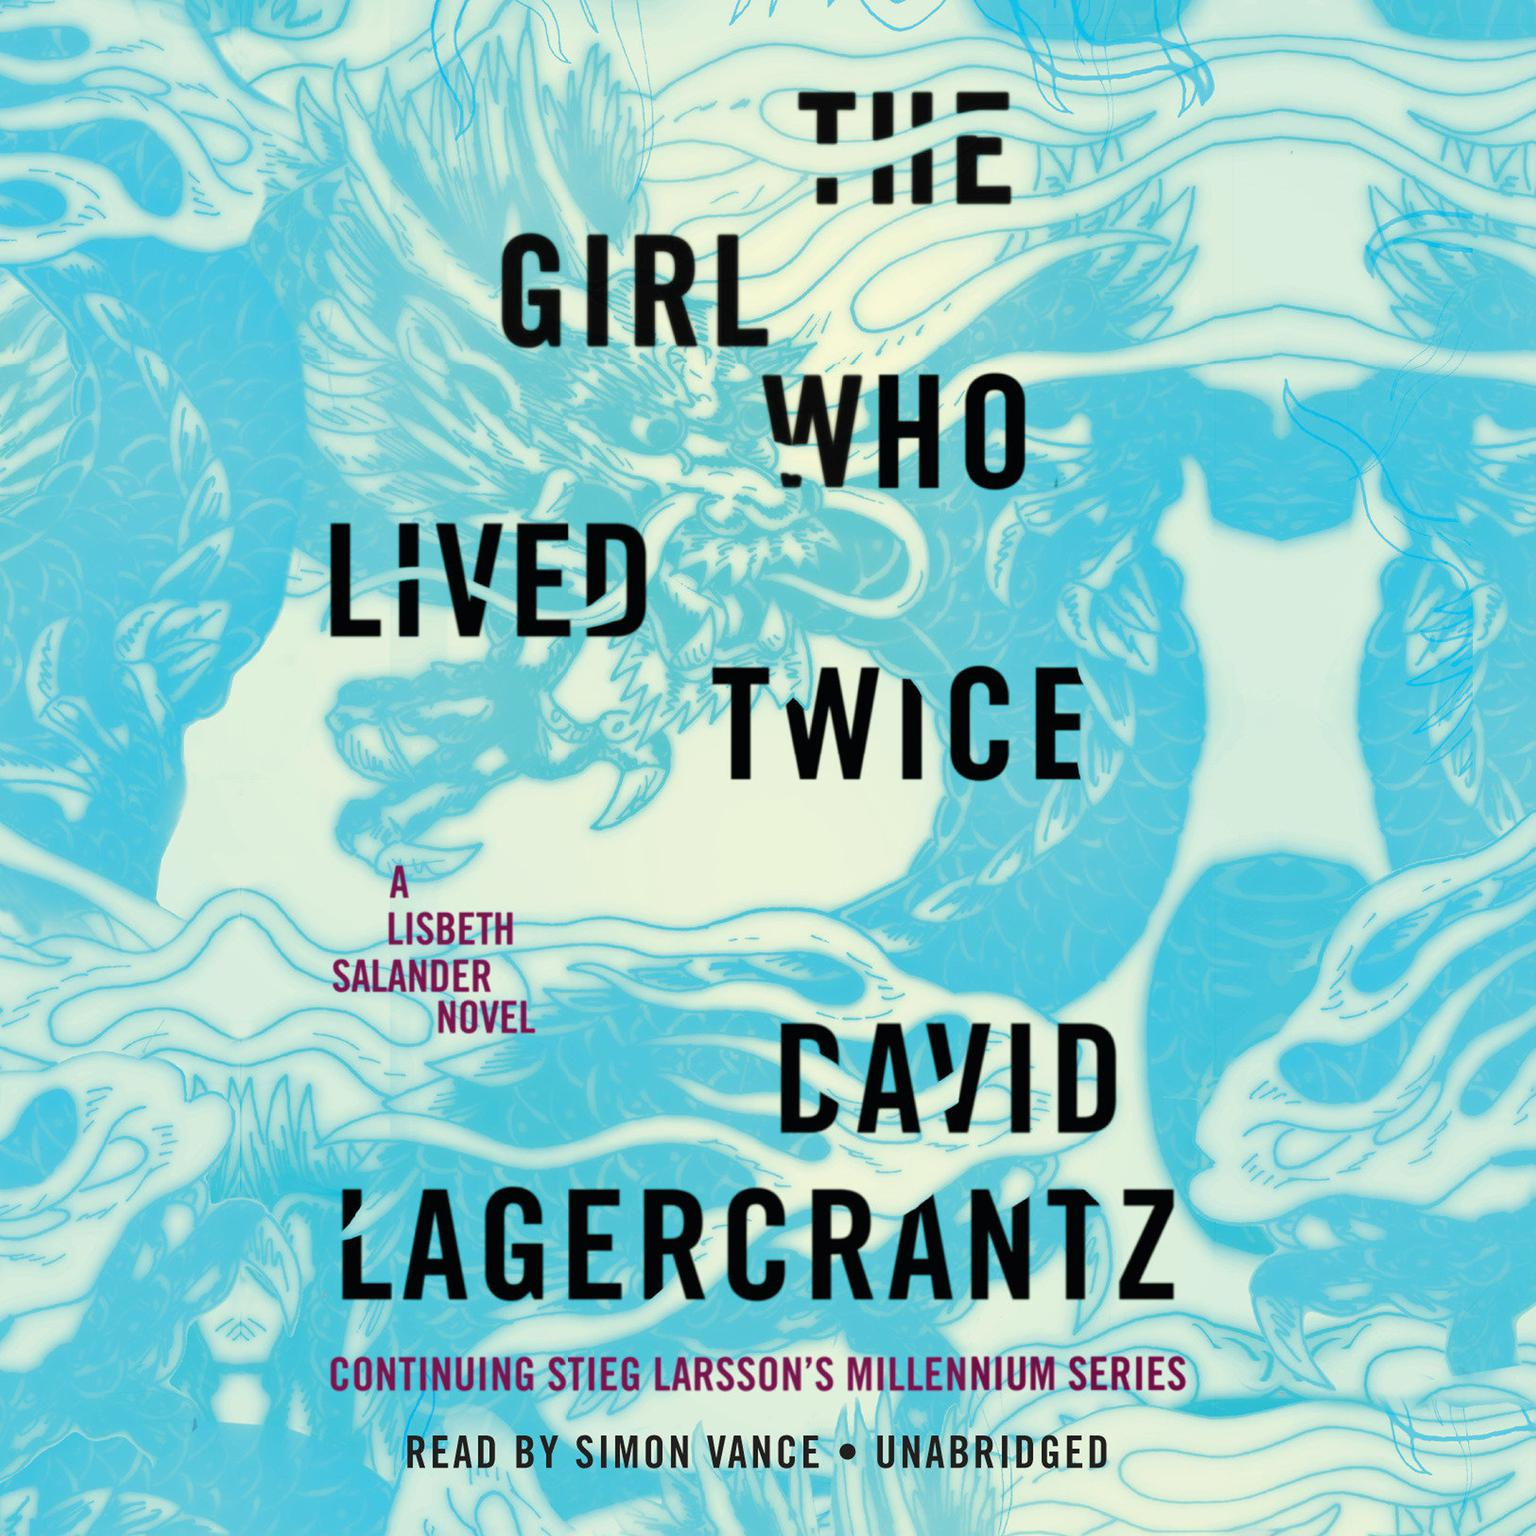 Printable The Girl Who Lived Twice: A Lisbeth Salander novel, continuing Stieg Larsson's Millennium Series Audiobook Cover Art